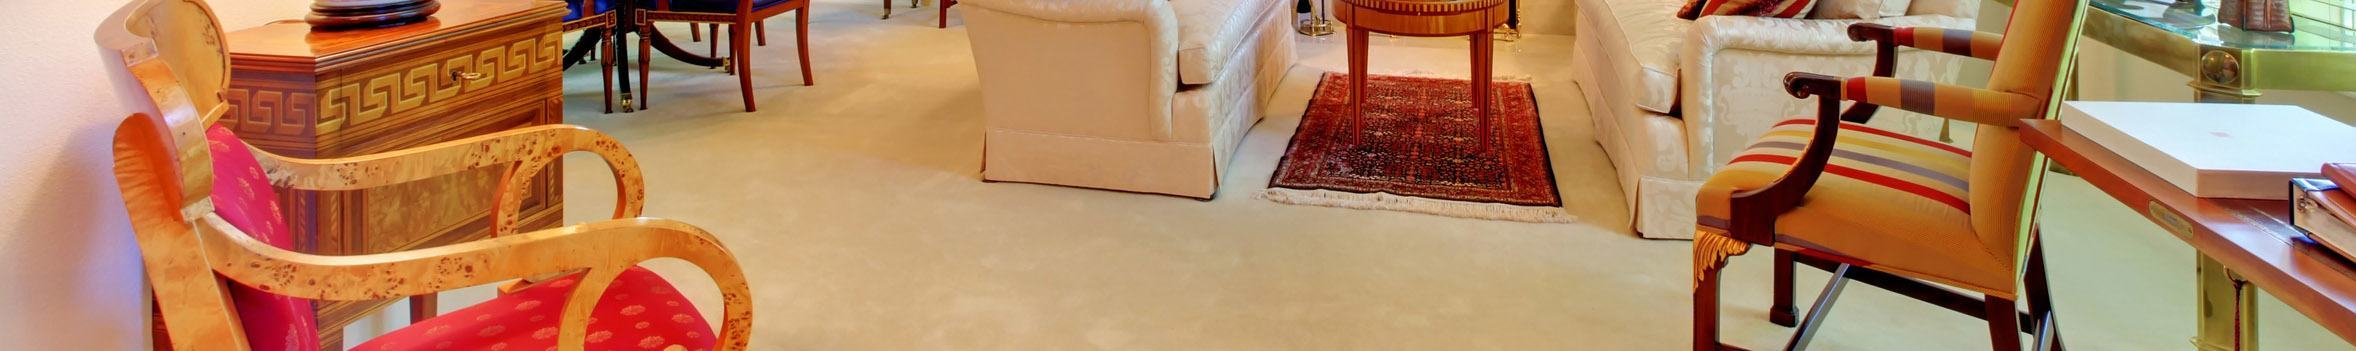 Carpet Cleaning Vancouver